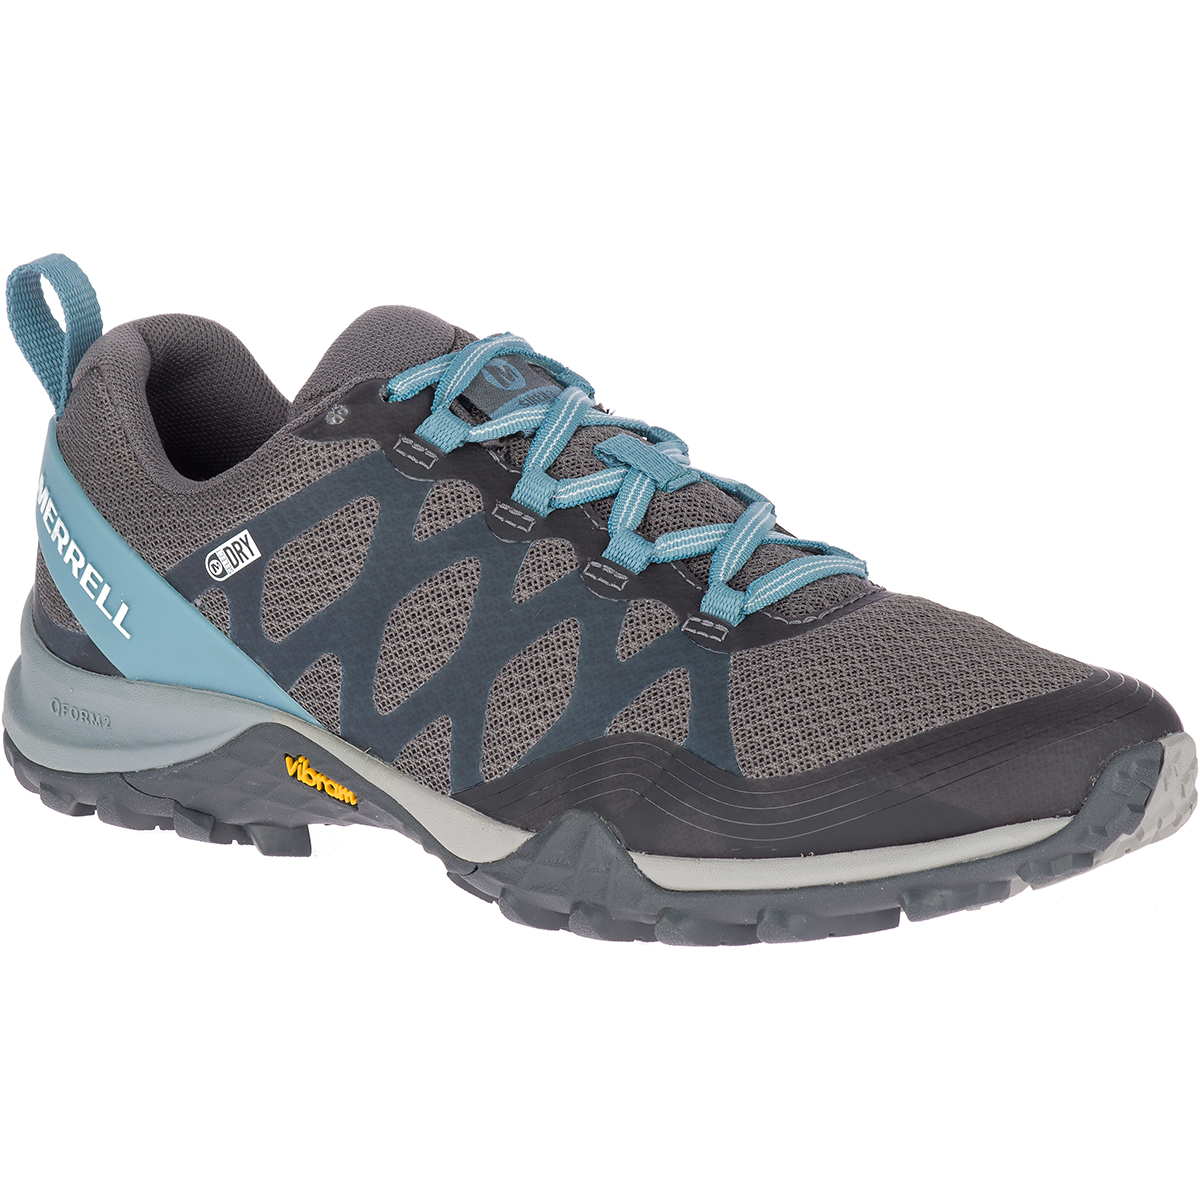 Merrell Women's Siren 3 Waterproof Low Hiking Shoes - Blue, 7.5